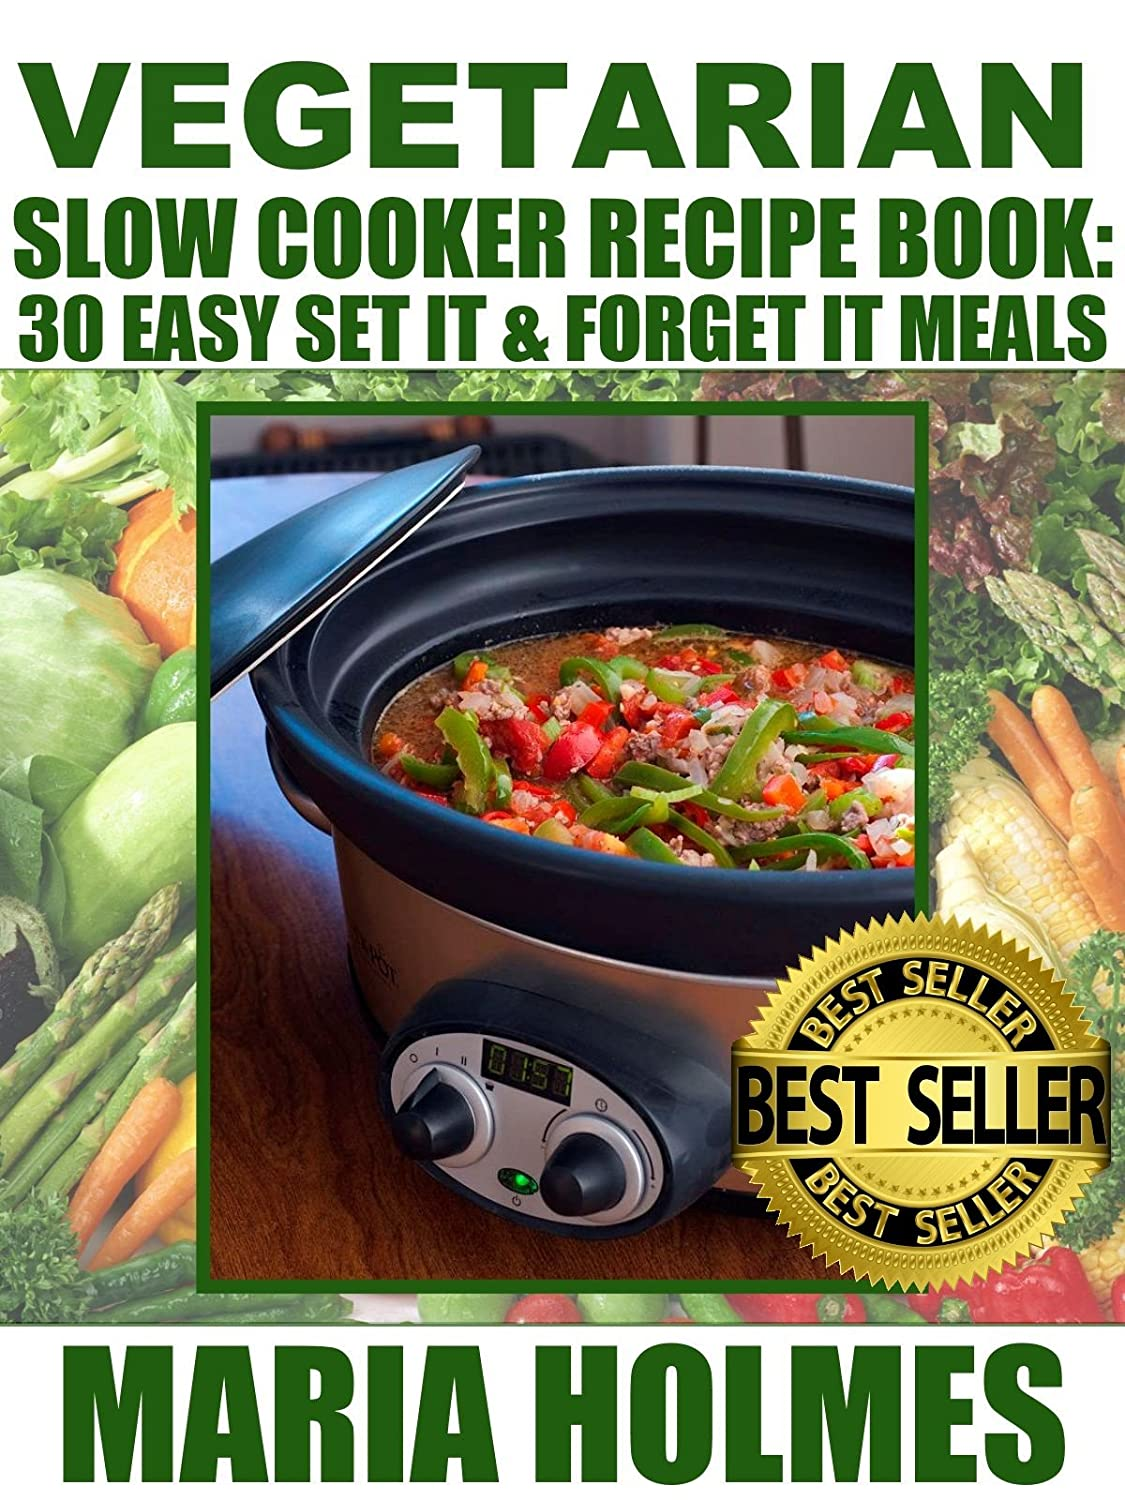 Vegetarian Slow Cooker Recipe Book: 30 Easy Set It & Forget It Meals